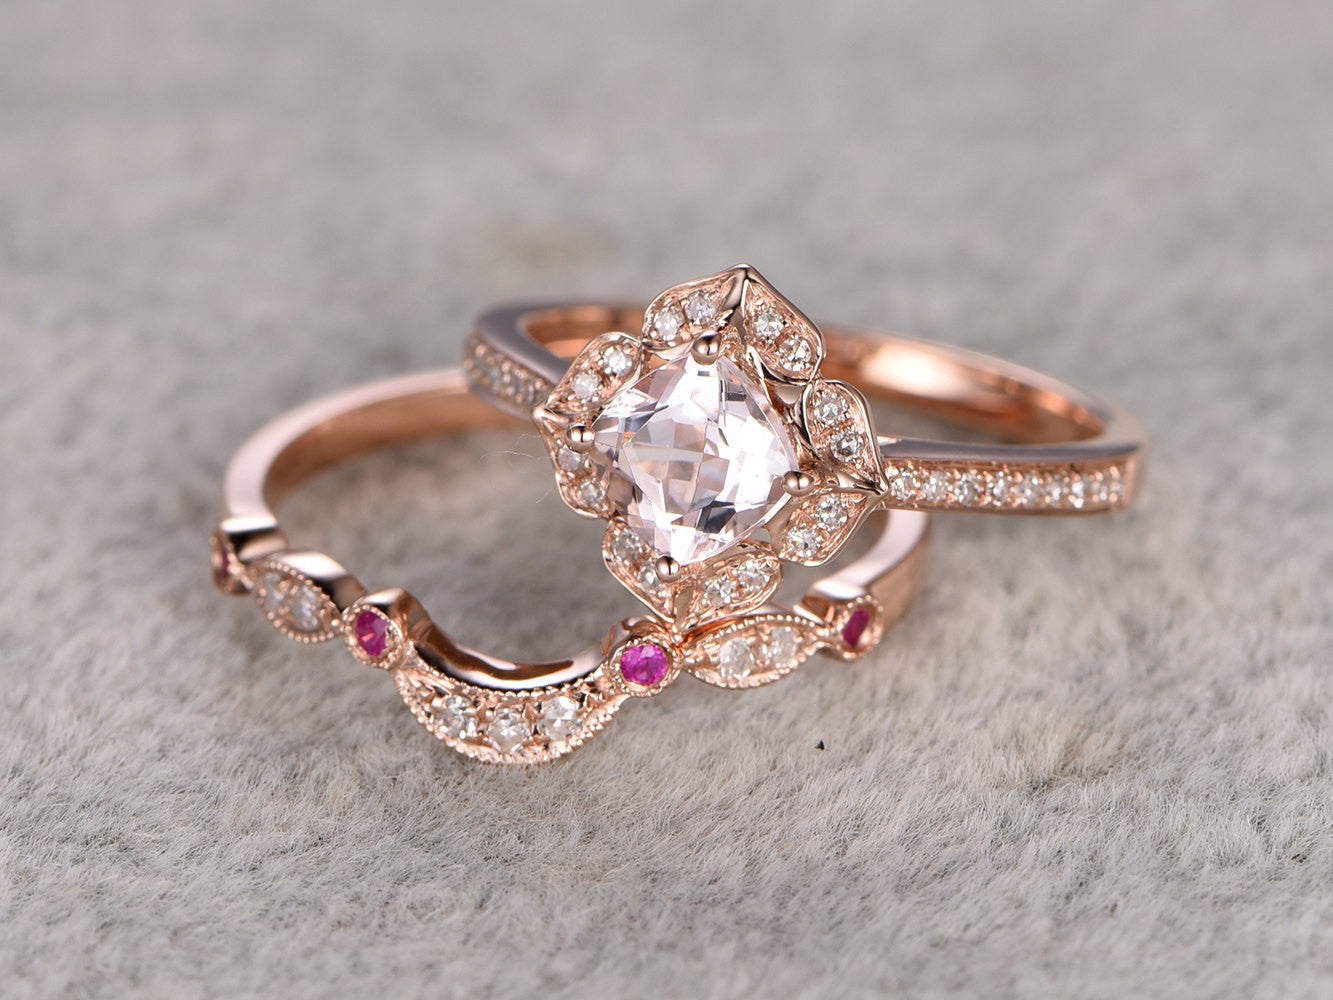 2pcs Morganite Bridal Ring Set,Engagement ring Rose gold,Diamond wedding band,14k,6mm Cushion Cut,Promise Ring,Retro Vintage Floral,Art Deco